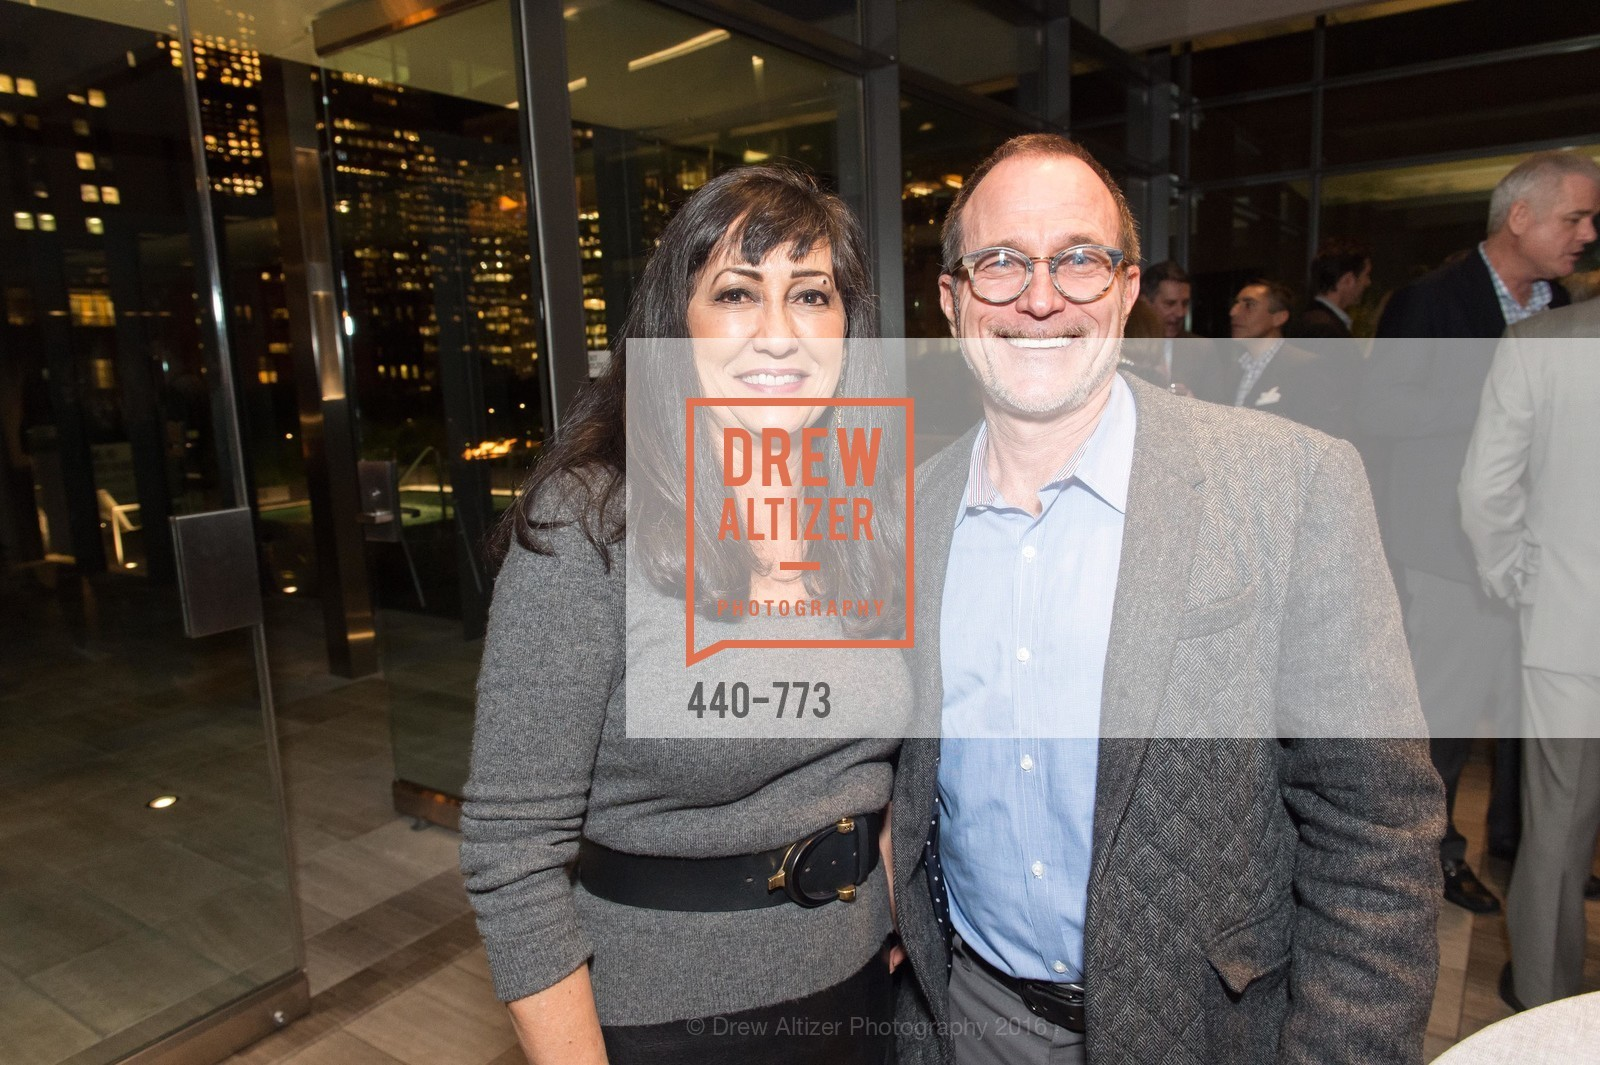 Danielle Chavanon, Brad Smith, Sotheby's International Realty's Celebrates the New Year, The Battery, Penthouse. 717 Battery St, January 27th, 2016,Drew Altizer, Drew Altizer Photography, full-service agency, private events, San Francisco photographer, photographer california